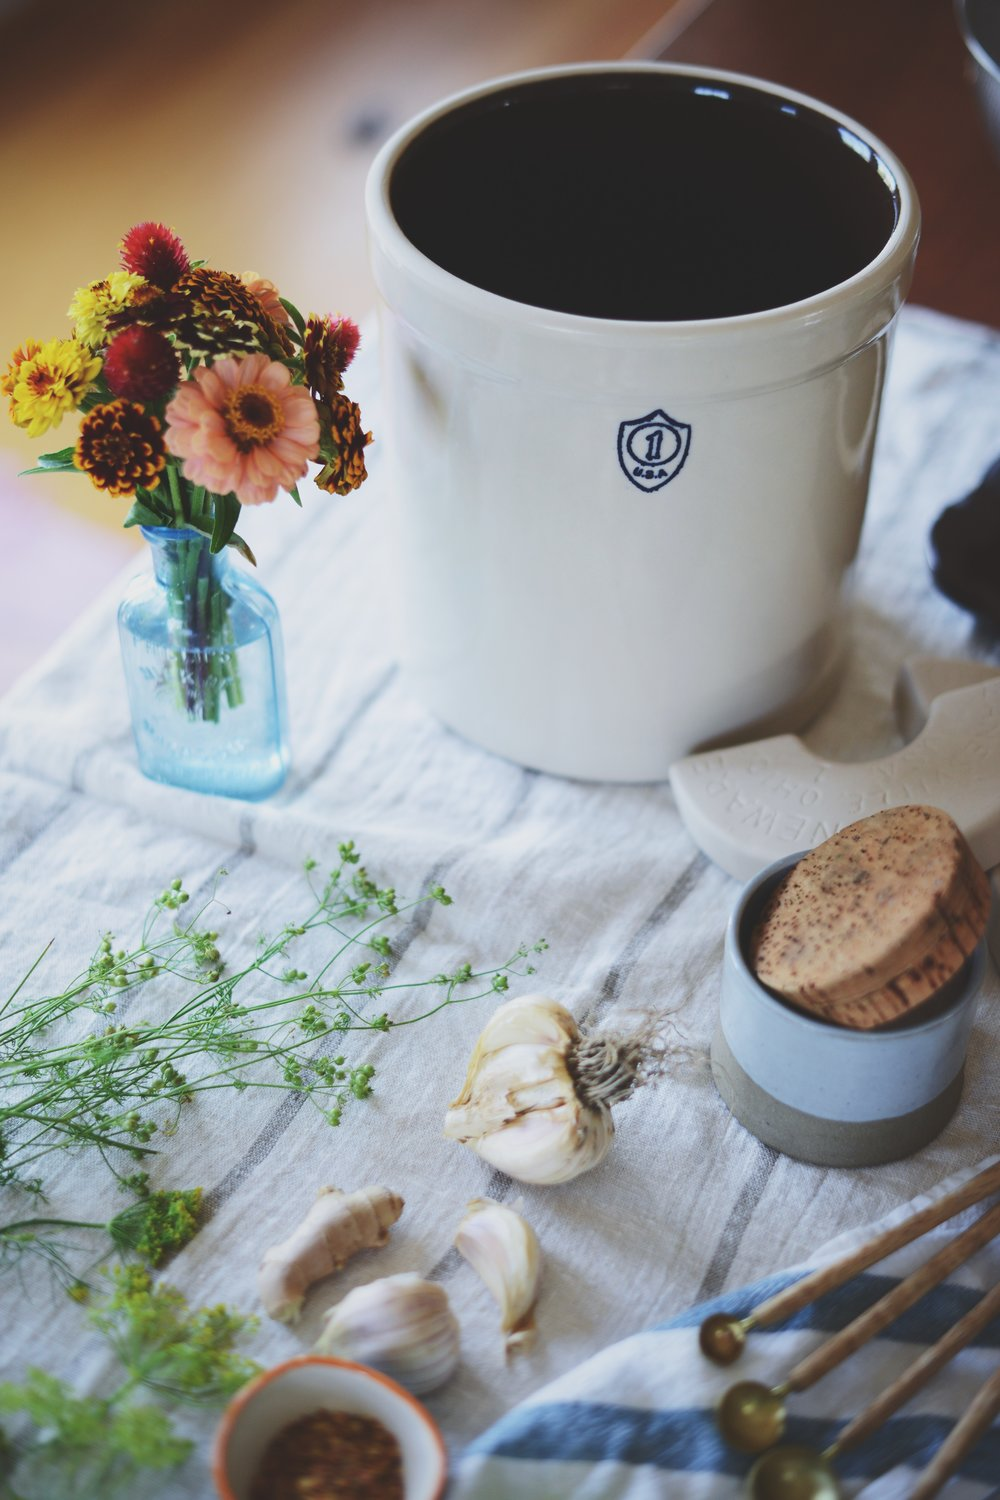 Fare Isle | Wild Fermented Golden Sauerkraut + Fermentation Crock Giveaway from Gardeners Supply Co.